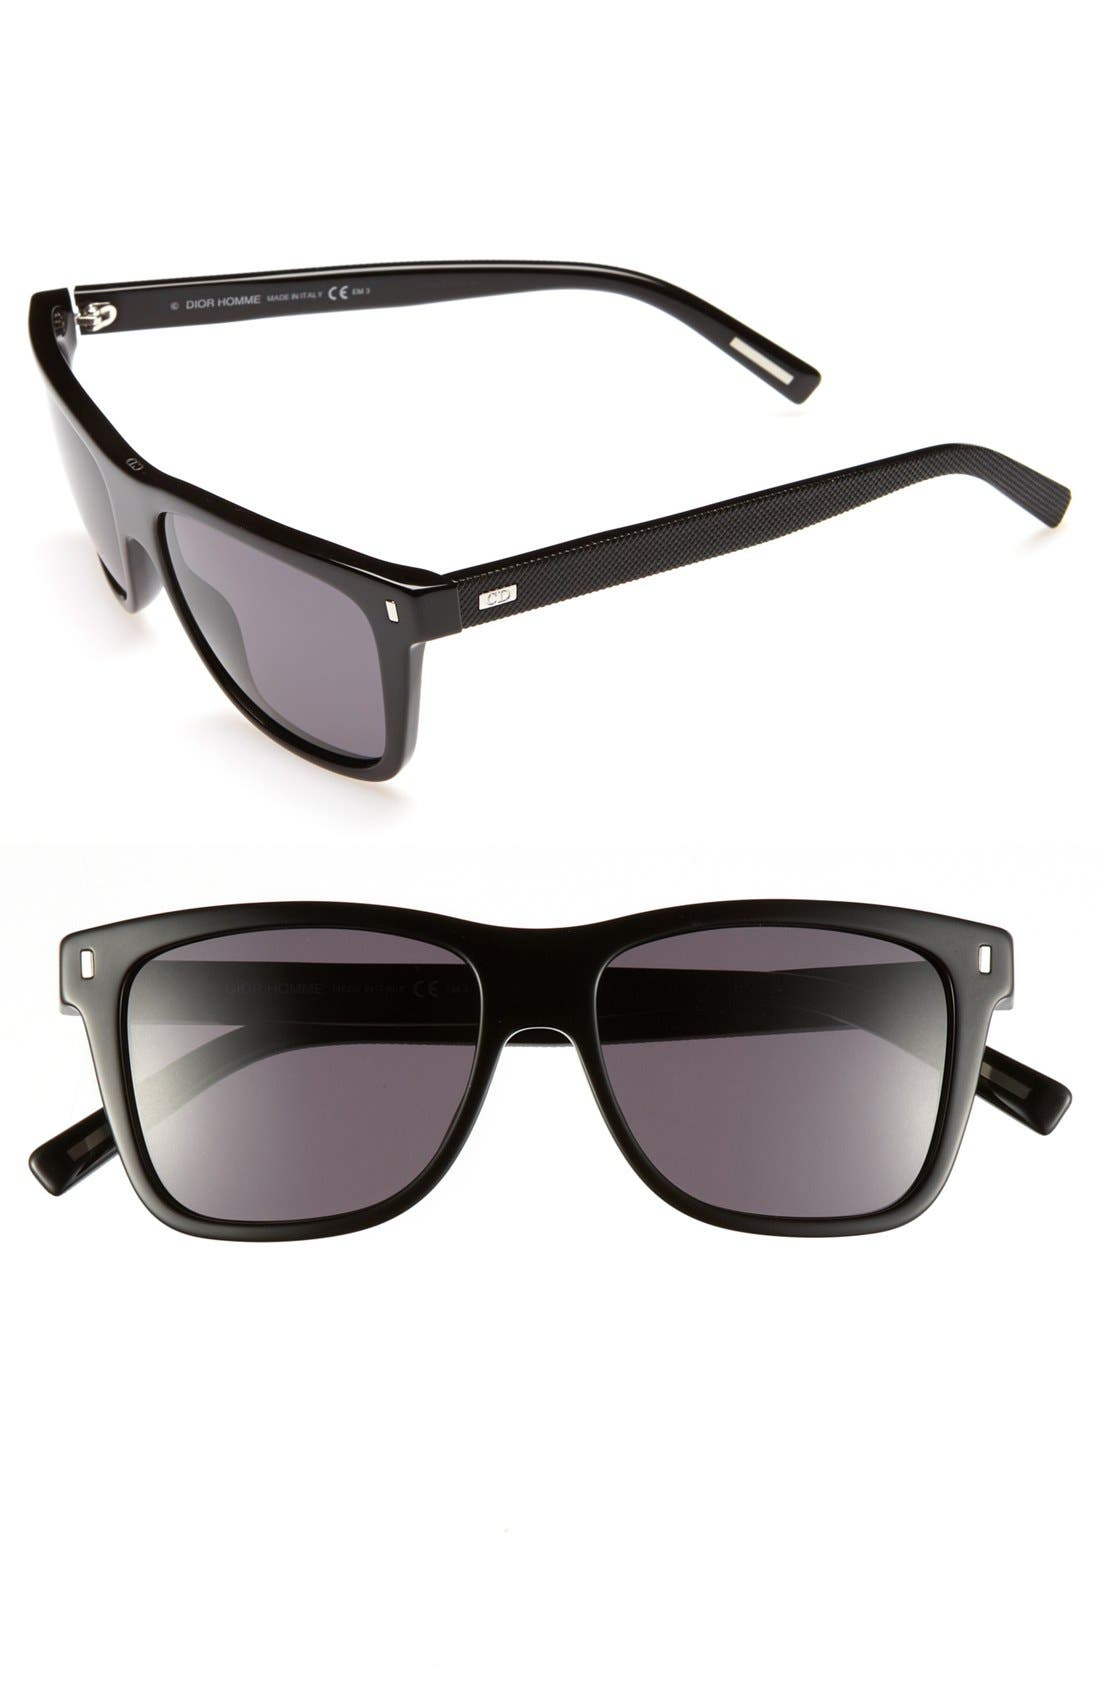 Main Image - Dior Homme '154S' 54mm Sunglasses